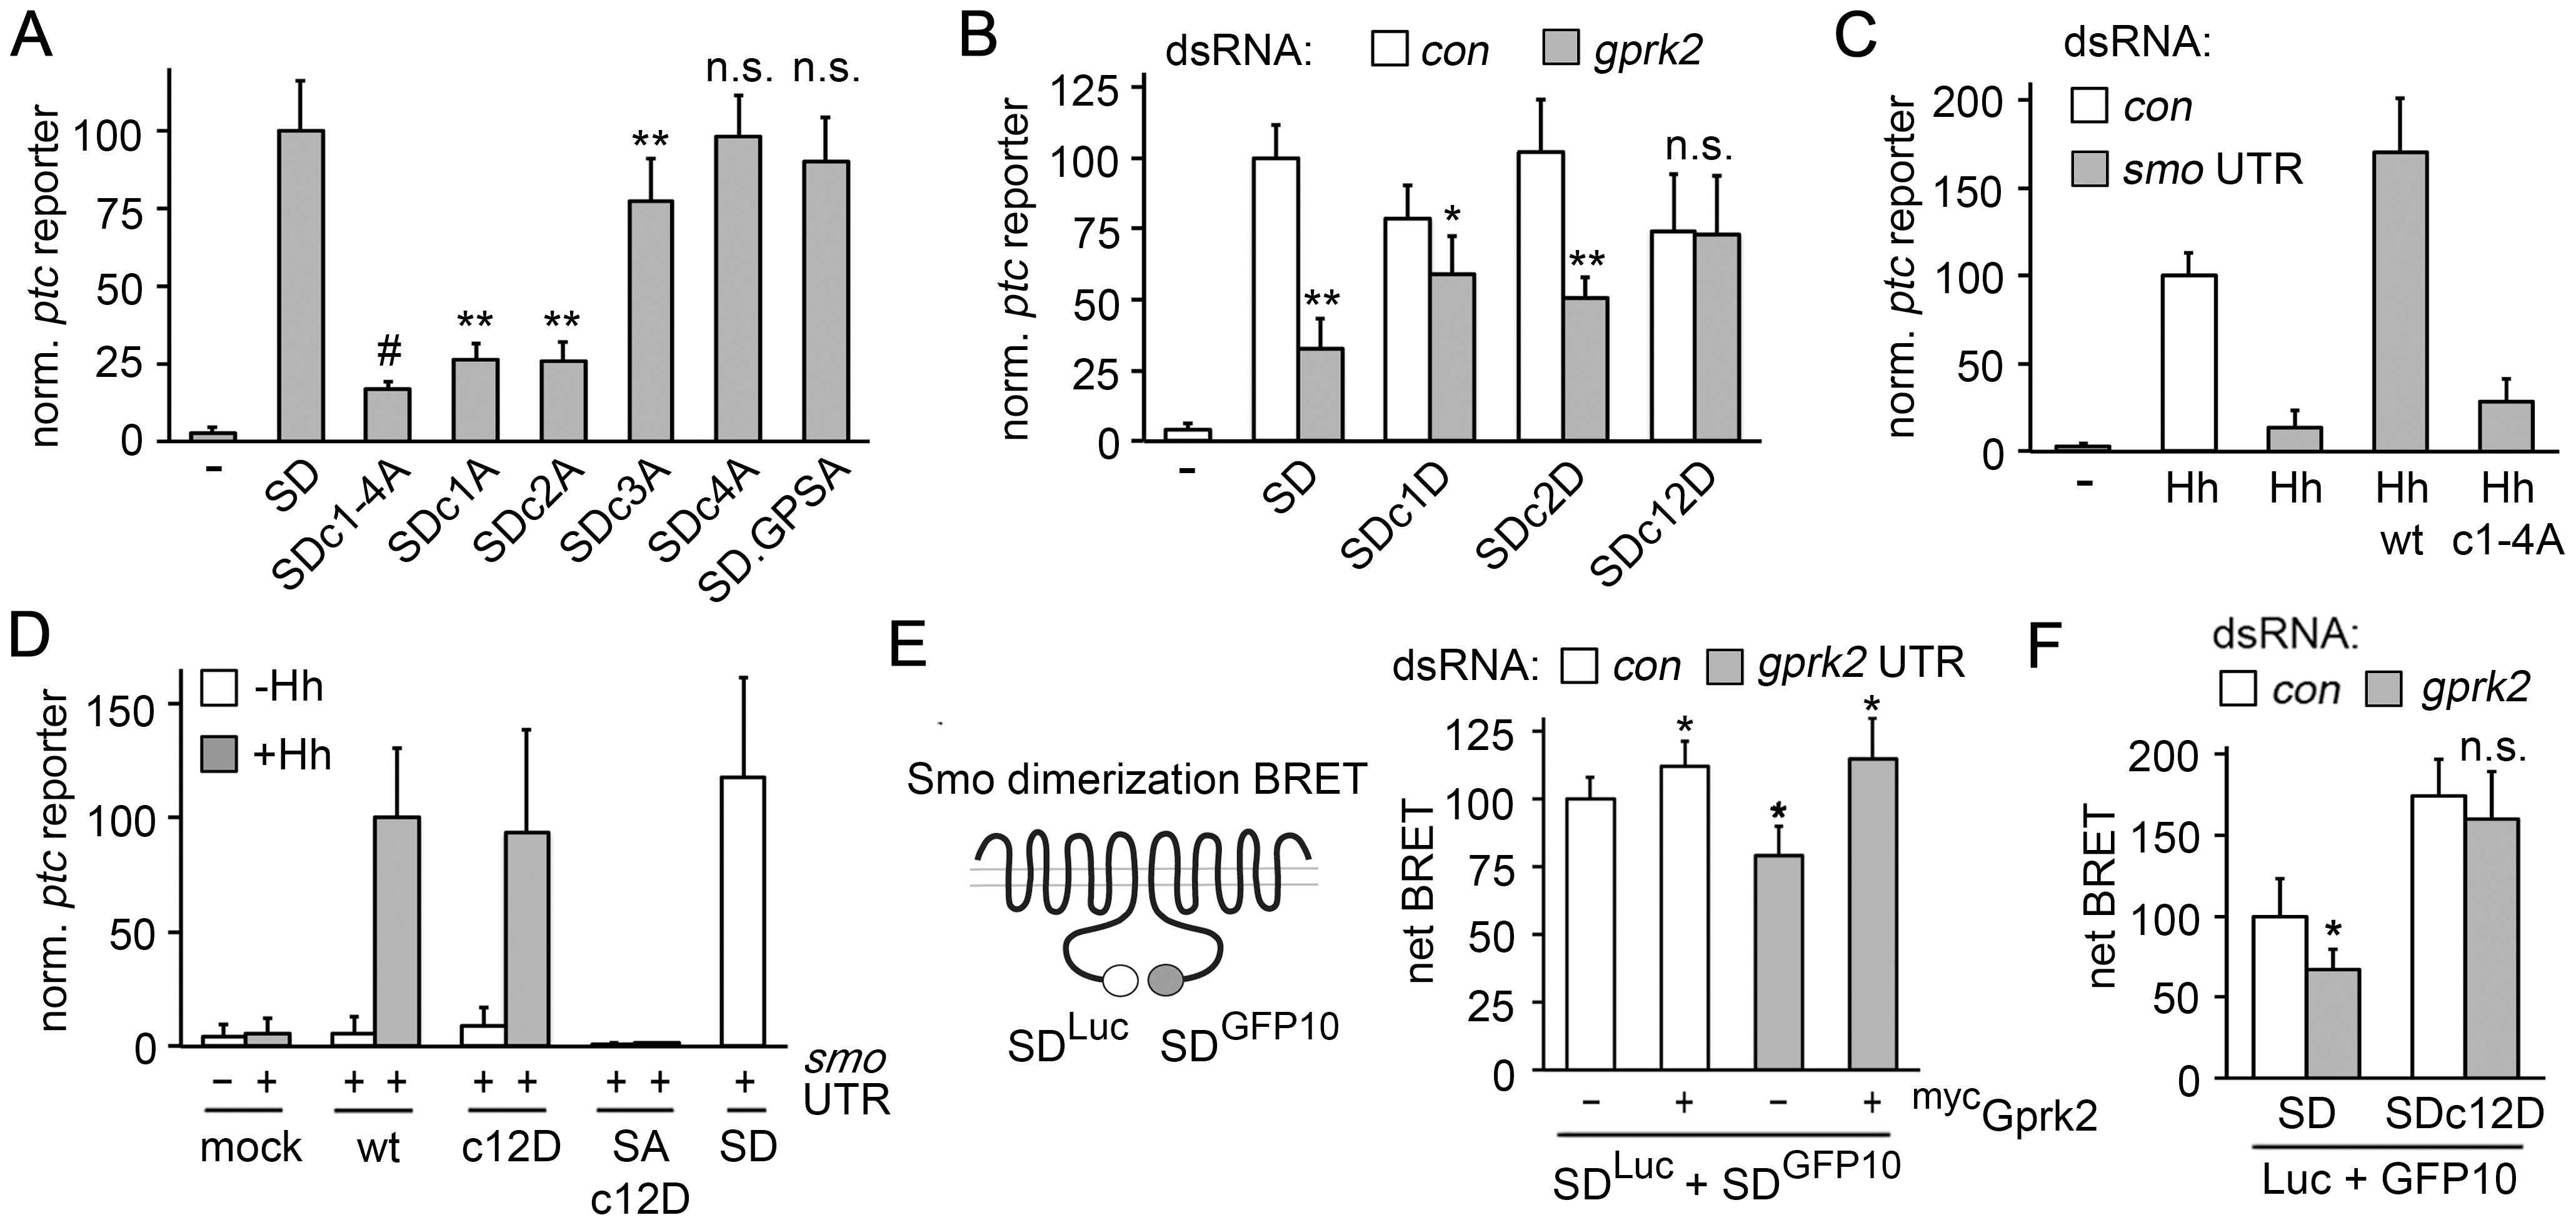 Gprk2 promotes Smo dimerization and activity.